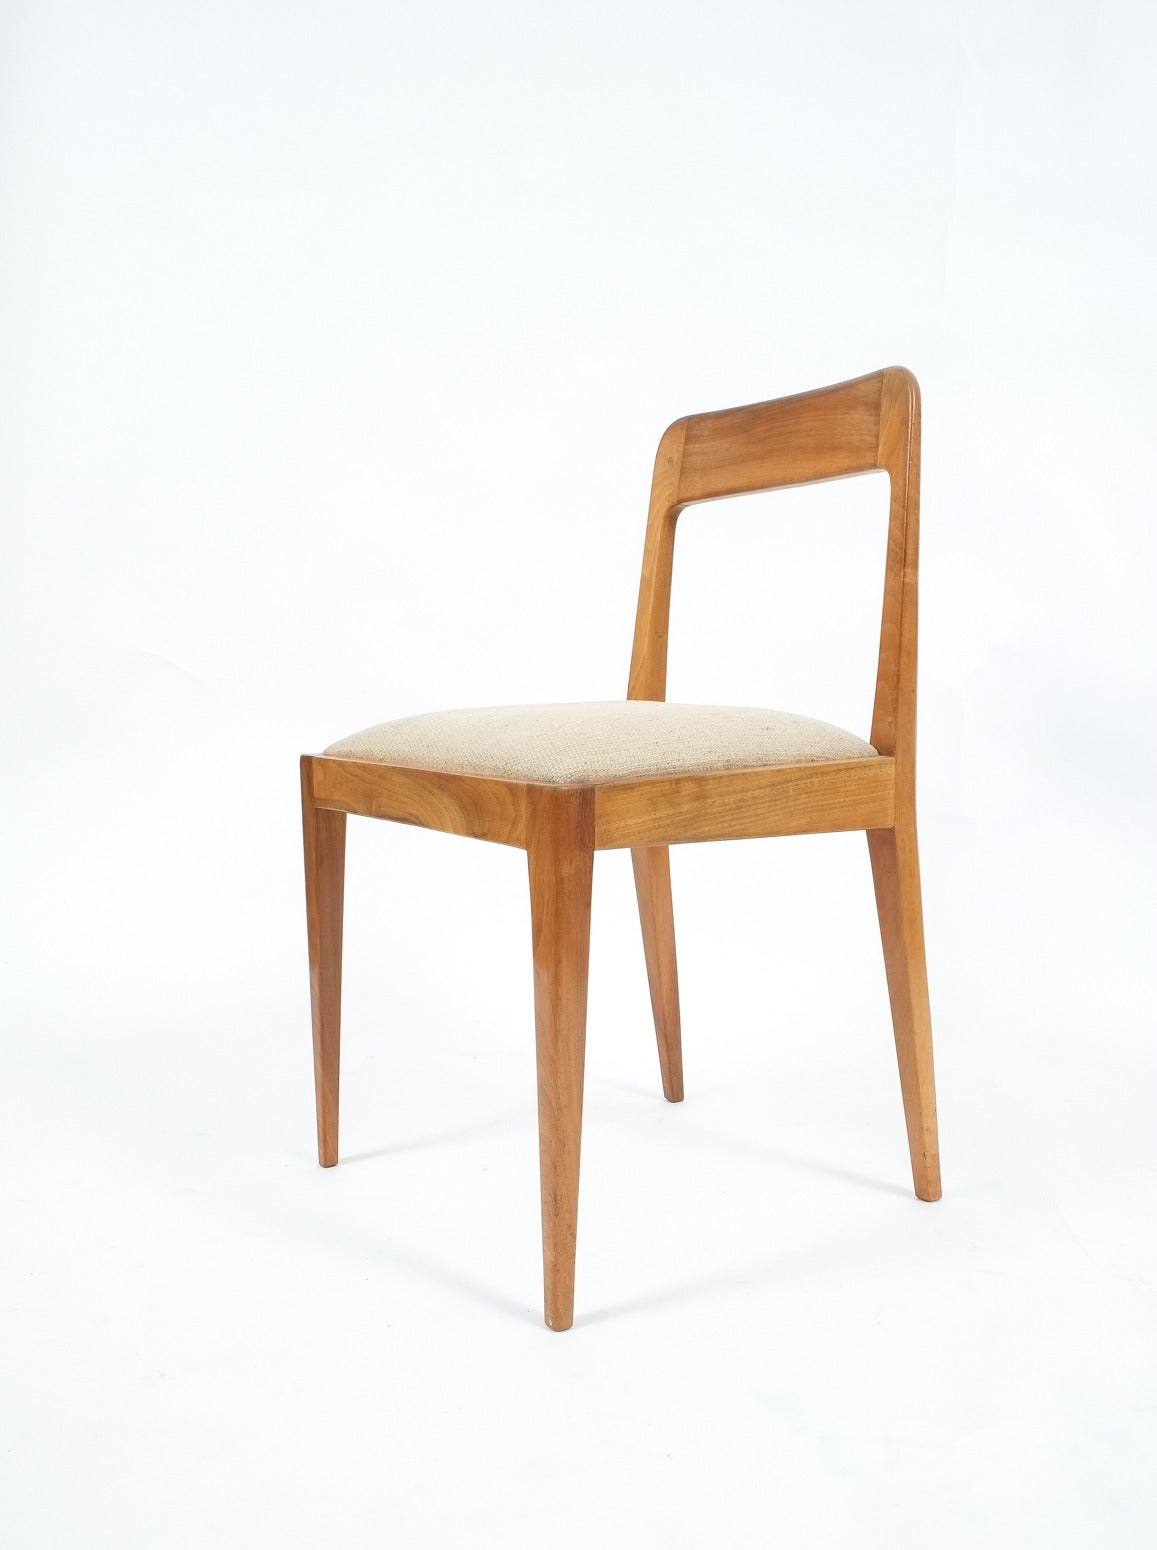 Rare set of six wooden chairs designed and executed by Carl Auböck and Robert Nestler in the 1950s (Model No. A 7) made from wood with upholstery made of beige fabric. The condition is very good. Upholstery might be customized.